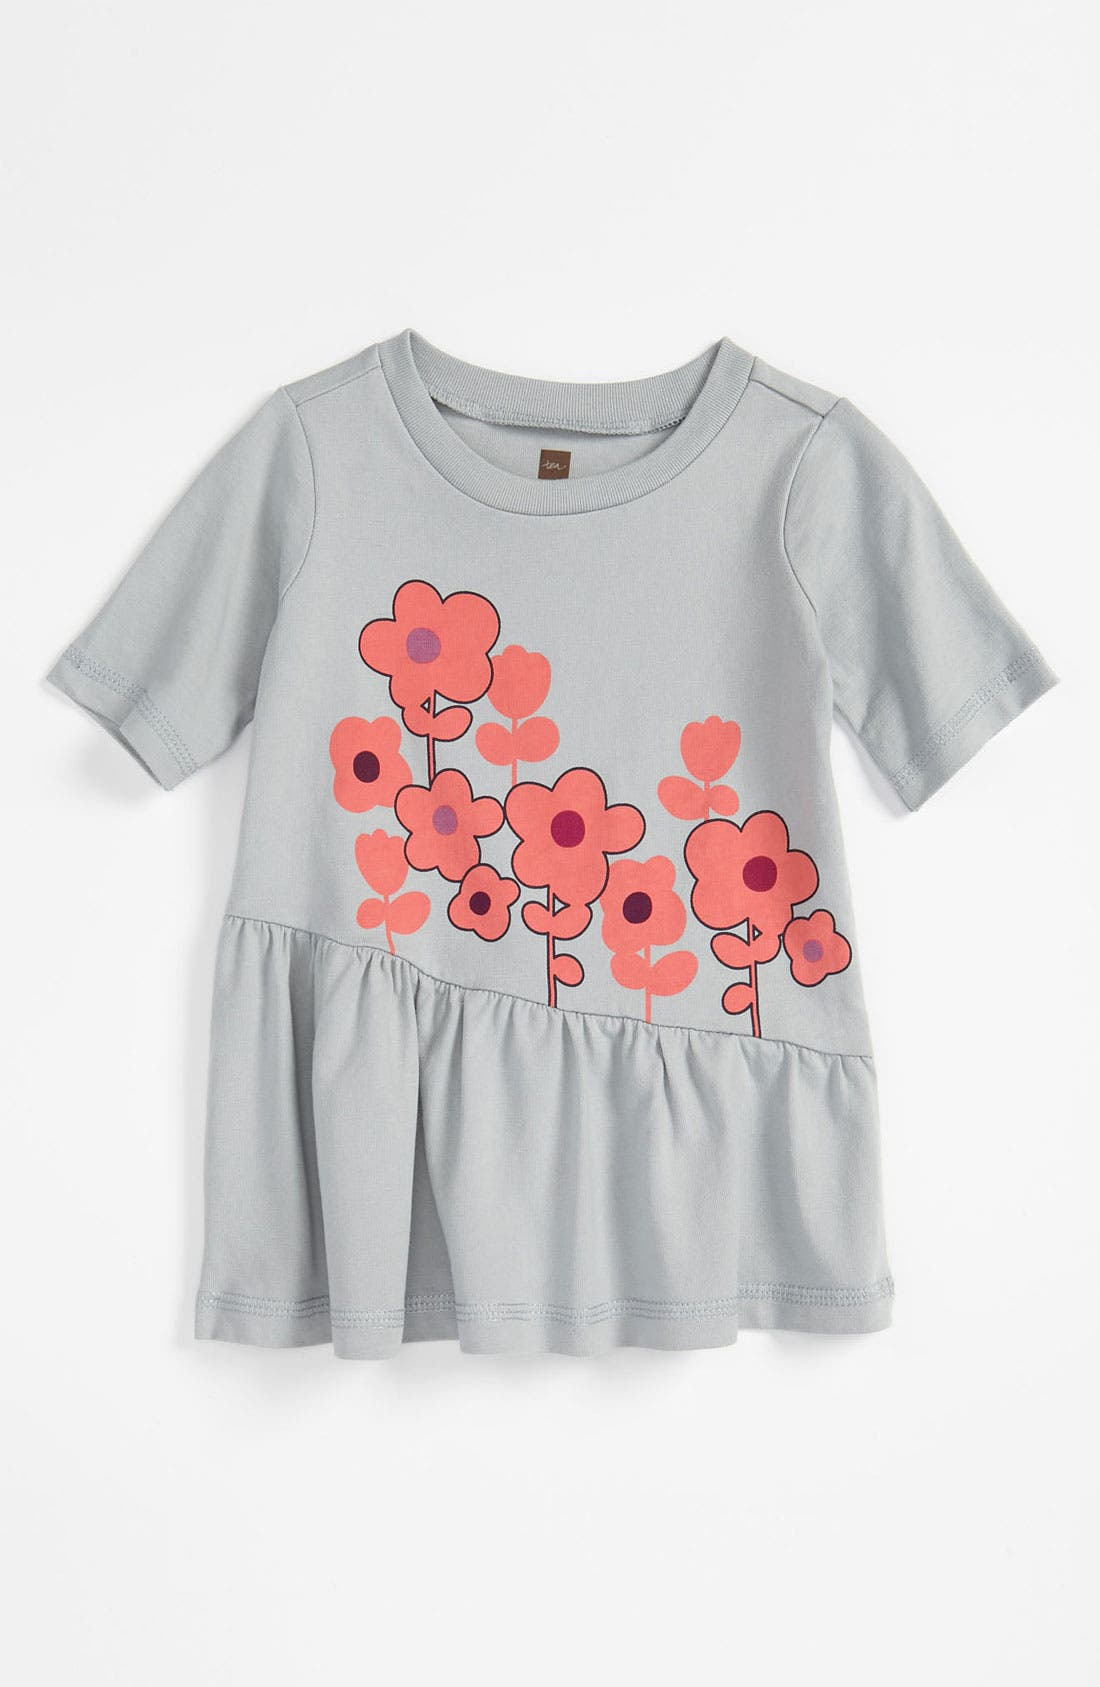 Main Image - Tea Collection 'Forget Me Not' Top (Infant)